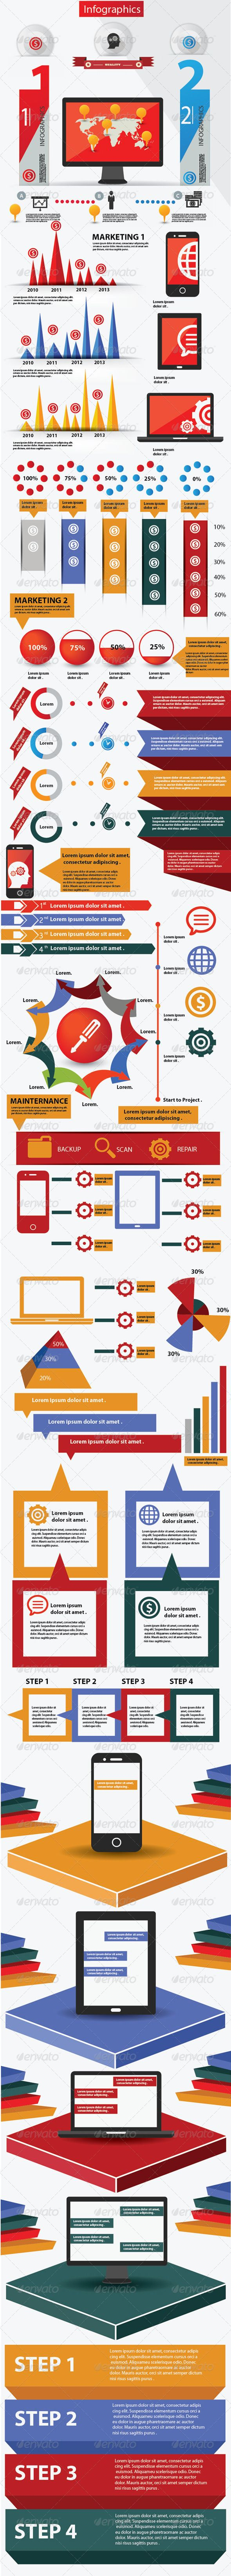 Infographics,Elements & Technology Graphics Design  #GraphicRiver         Infographics,Elements & Technology graphics design  	 File include :  	 2 Version :  	 1. Version One  	 2. Version Two  	 3 AI Files : for Illustrator cs5, Illustrator 8 and Illustrator 10  	 3 EPS Files : for Illustrator cs5, Illustrator 8 and Illustrator 10  	 - Font used is Myriad Pro  	      Created: 17October13 GraphicsFilesIncluded: VectorEPS #AIIllustrator ElementsIncluded: PieChart #LineChart #AreaChart…